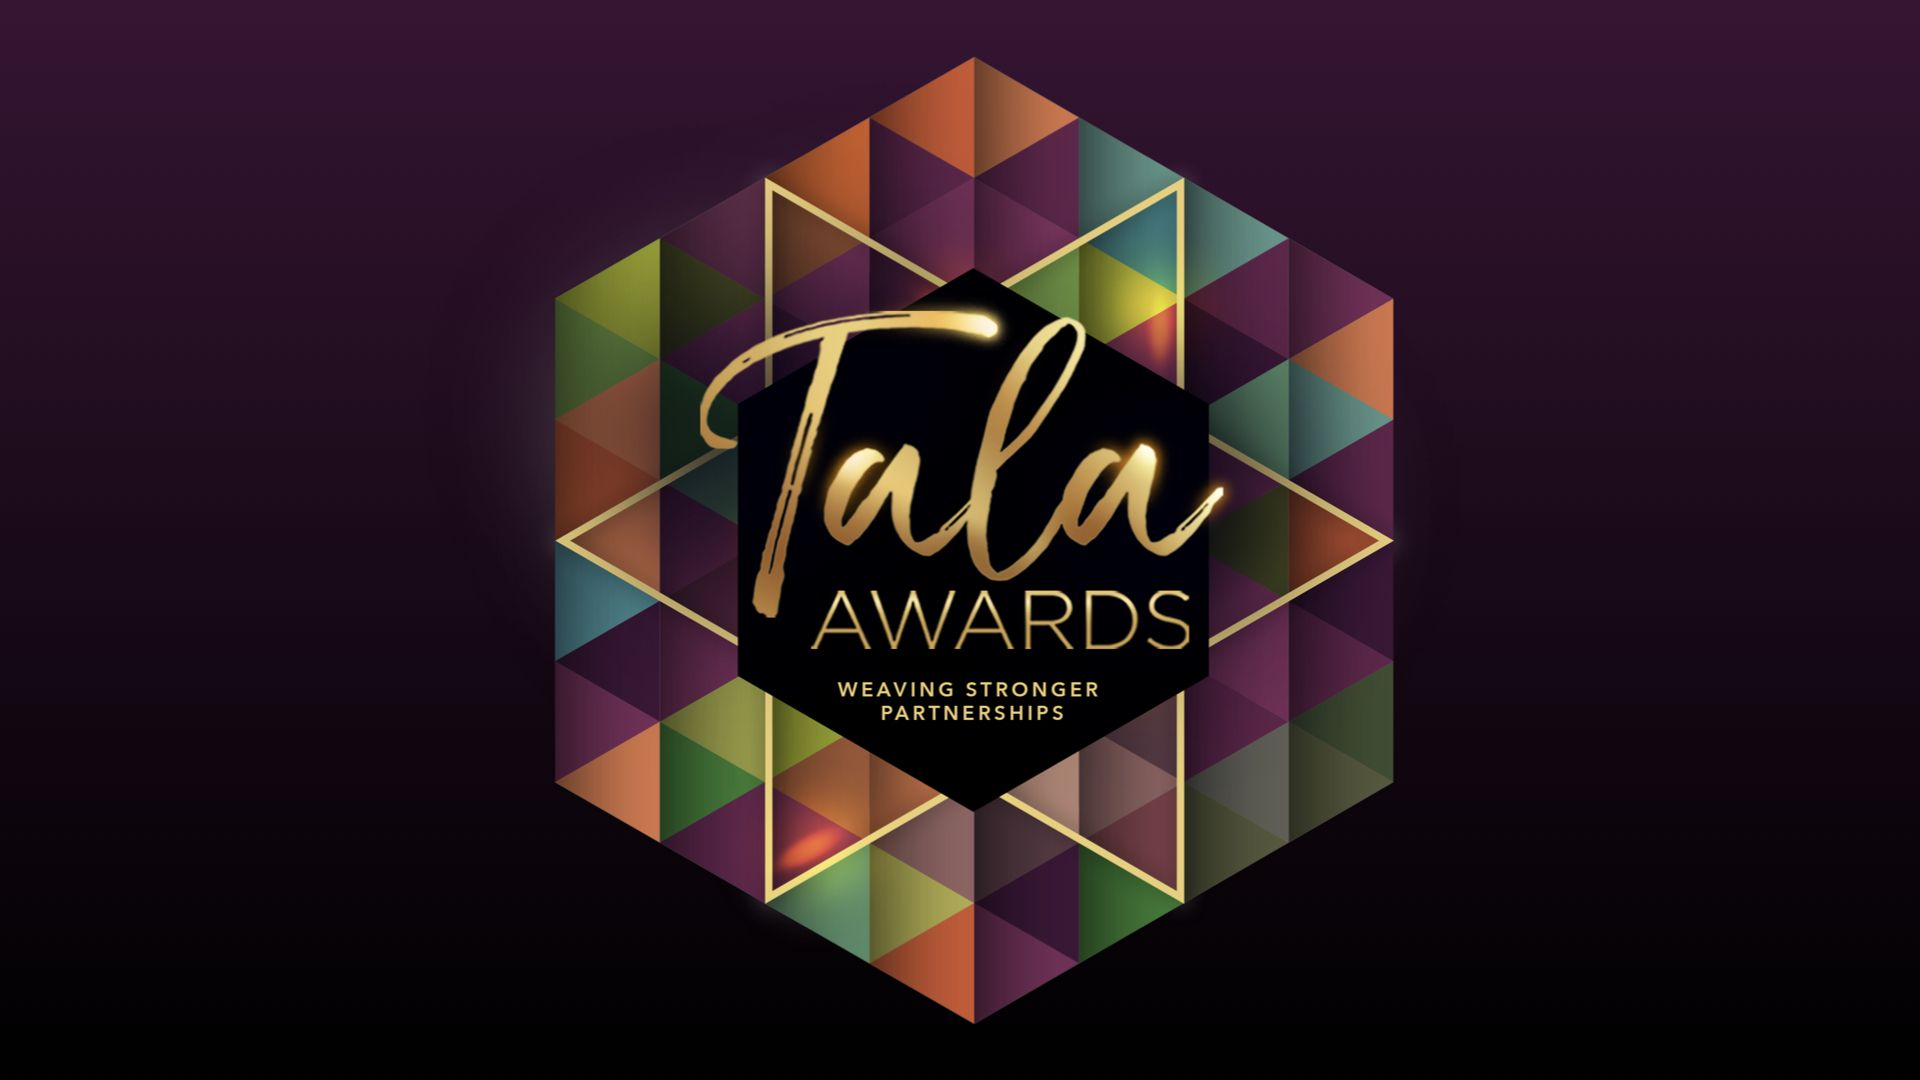 Merz Tala Awards 2020: Stories Of Beauty And Empowerment Weave Together